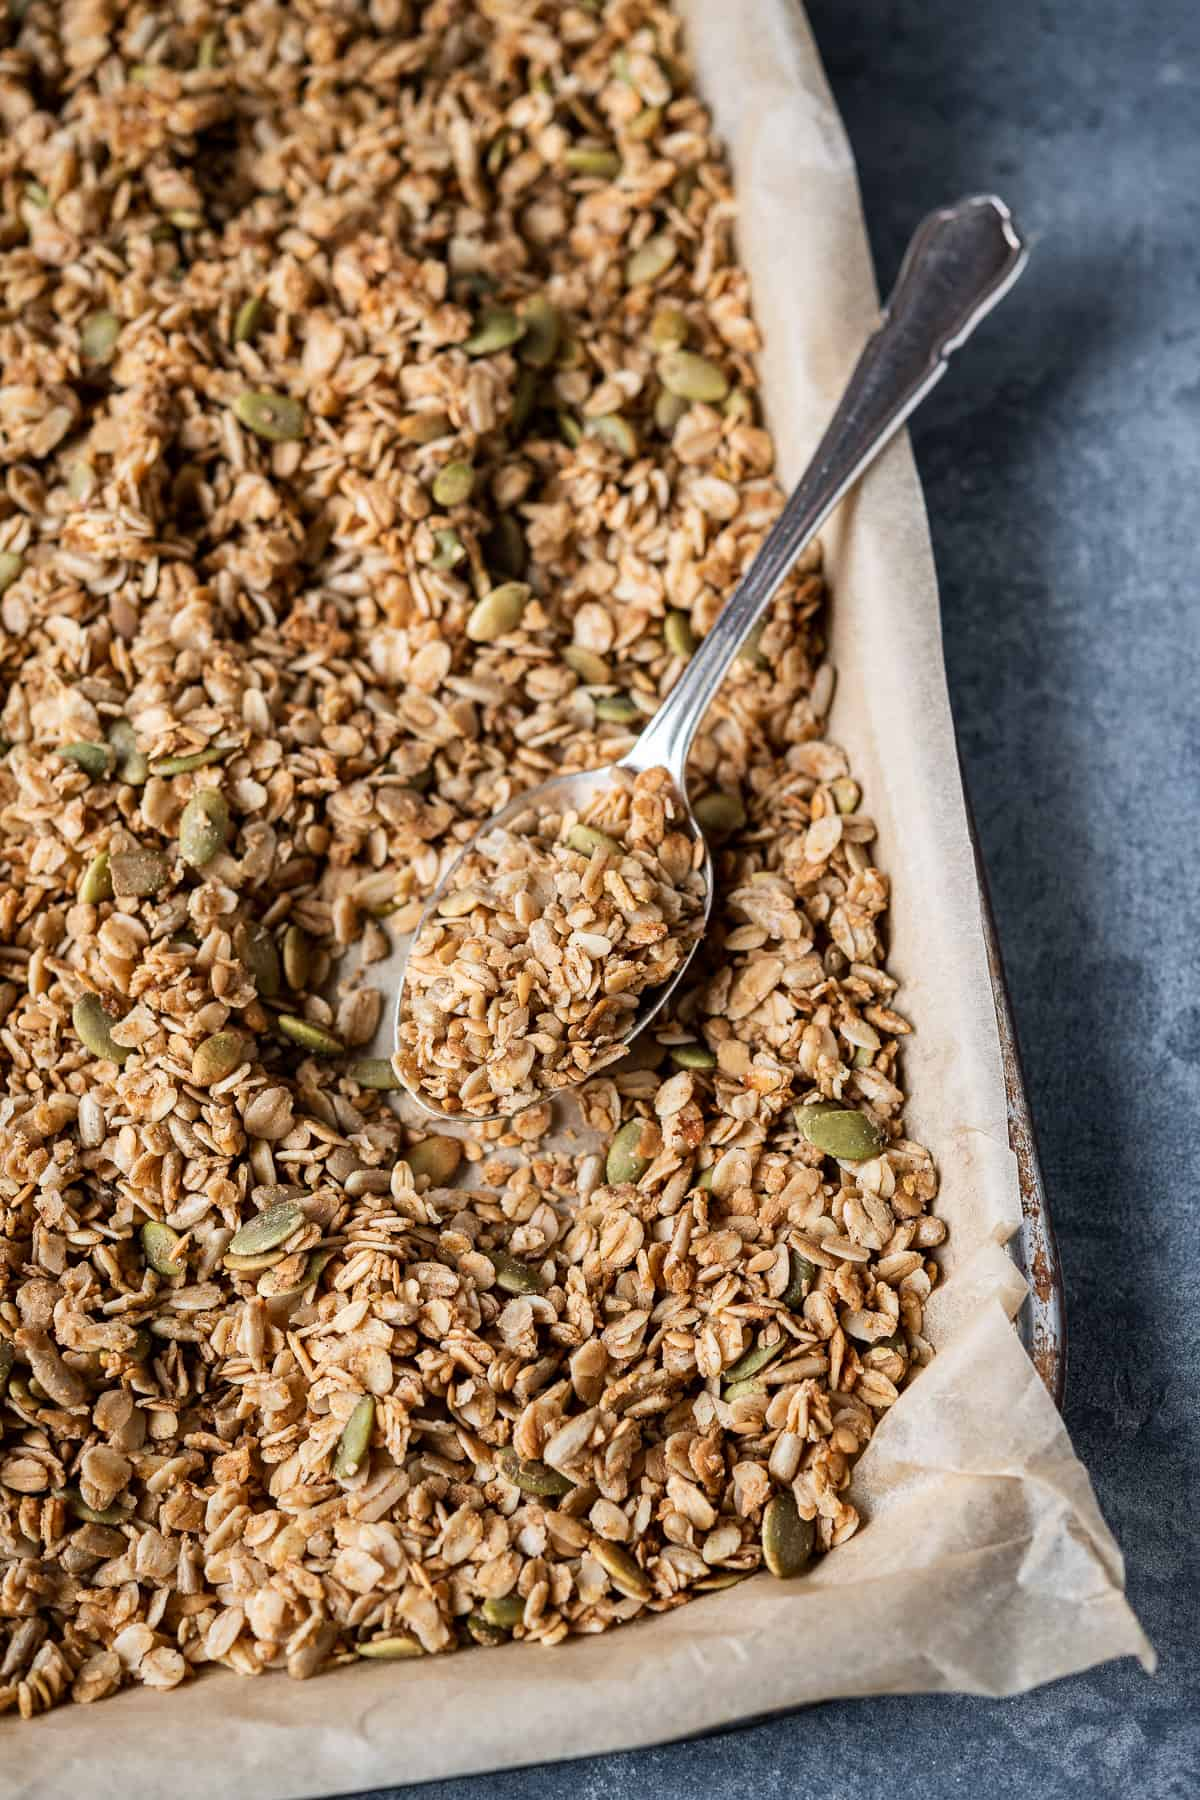 Vegan granola on a baking tray with a metal spoon.